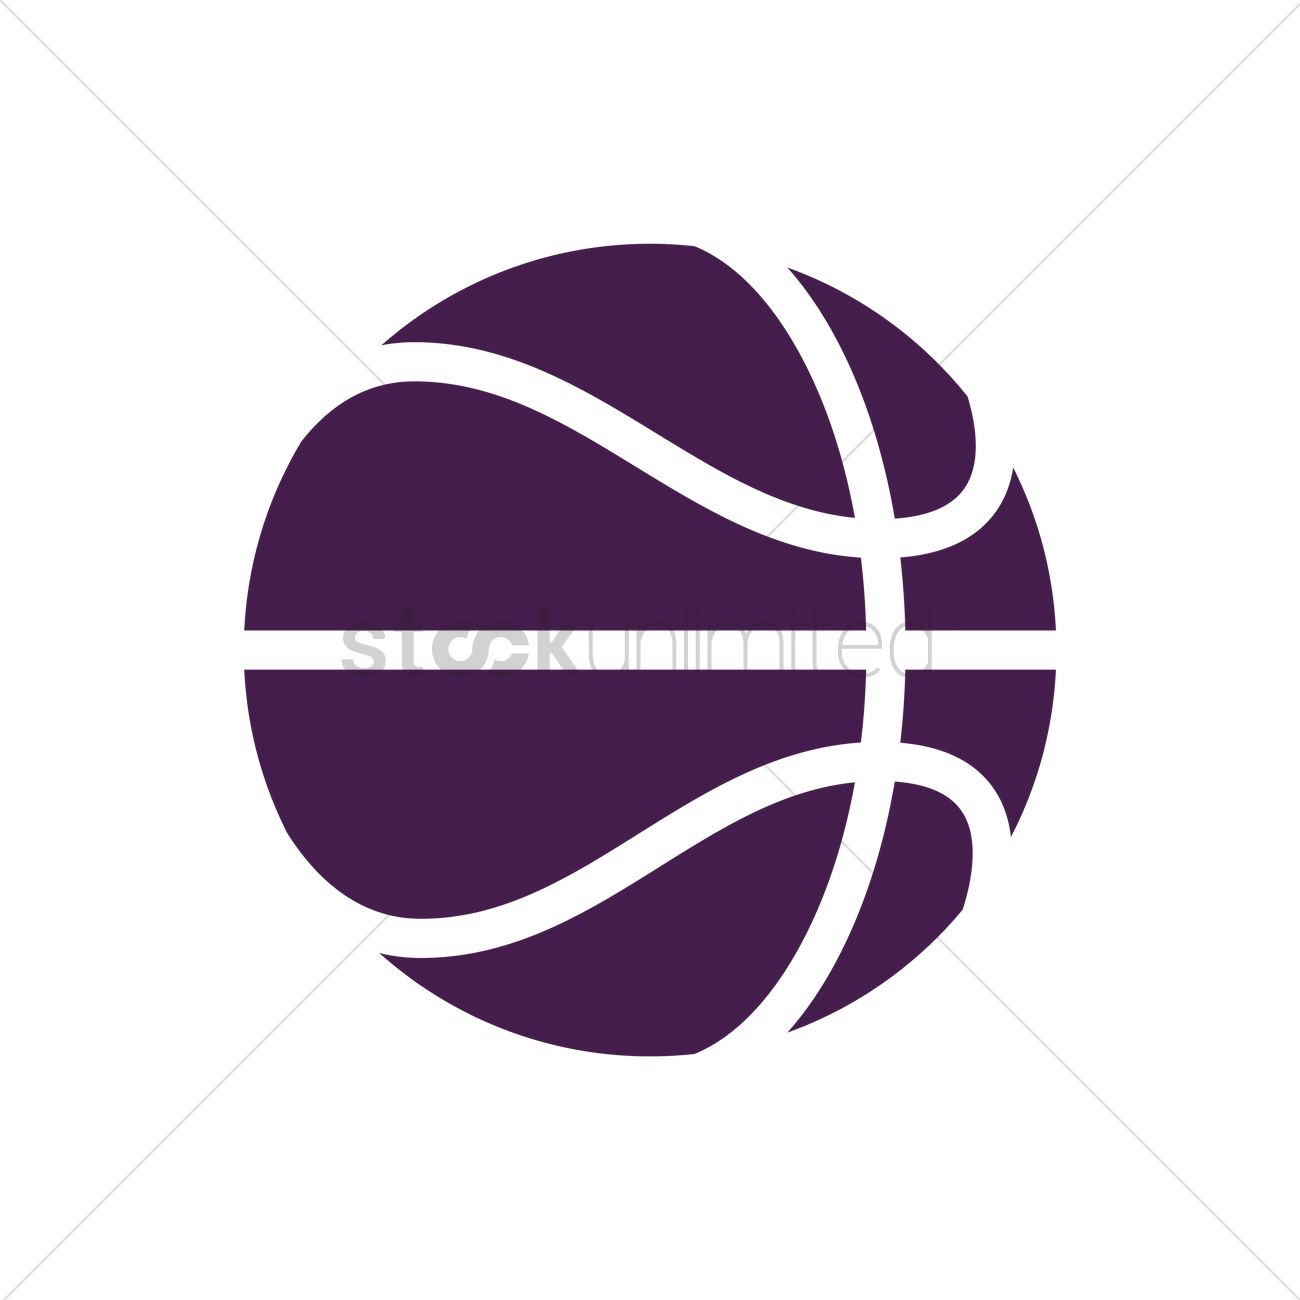 basketball vector image 1978483 stockunlimited rh stockunlimited com basketball vector image basketball vector image